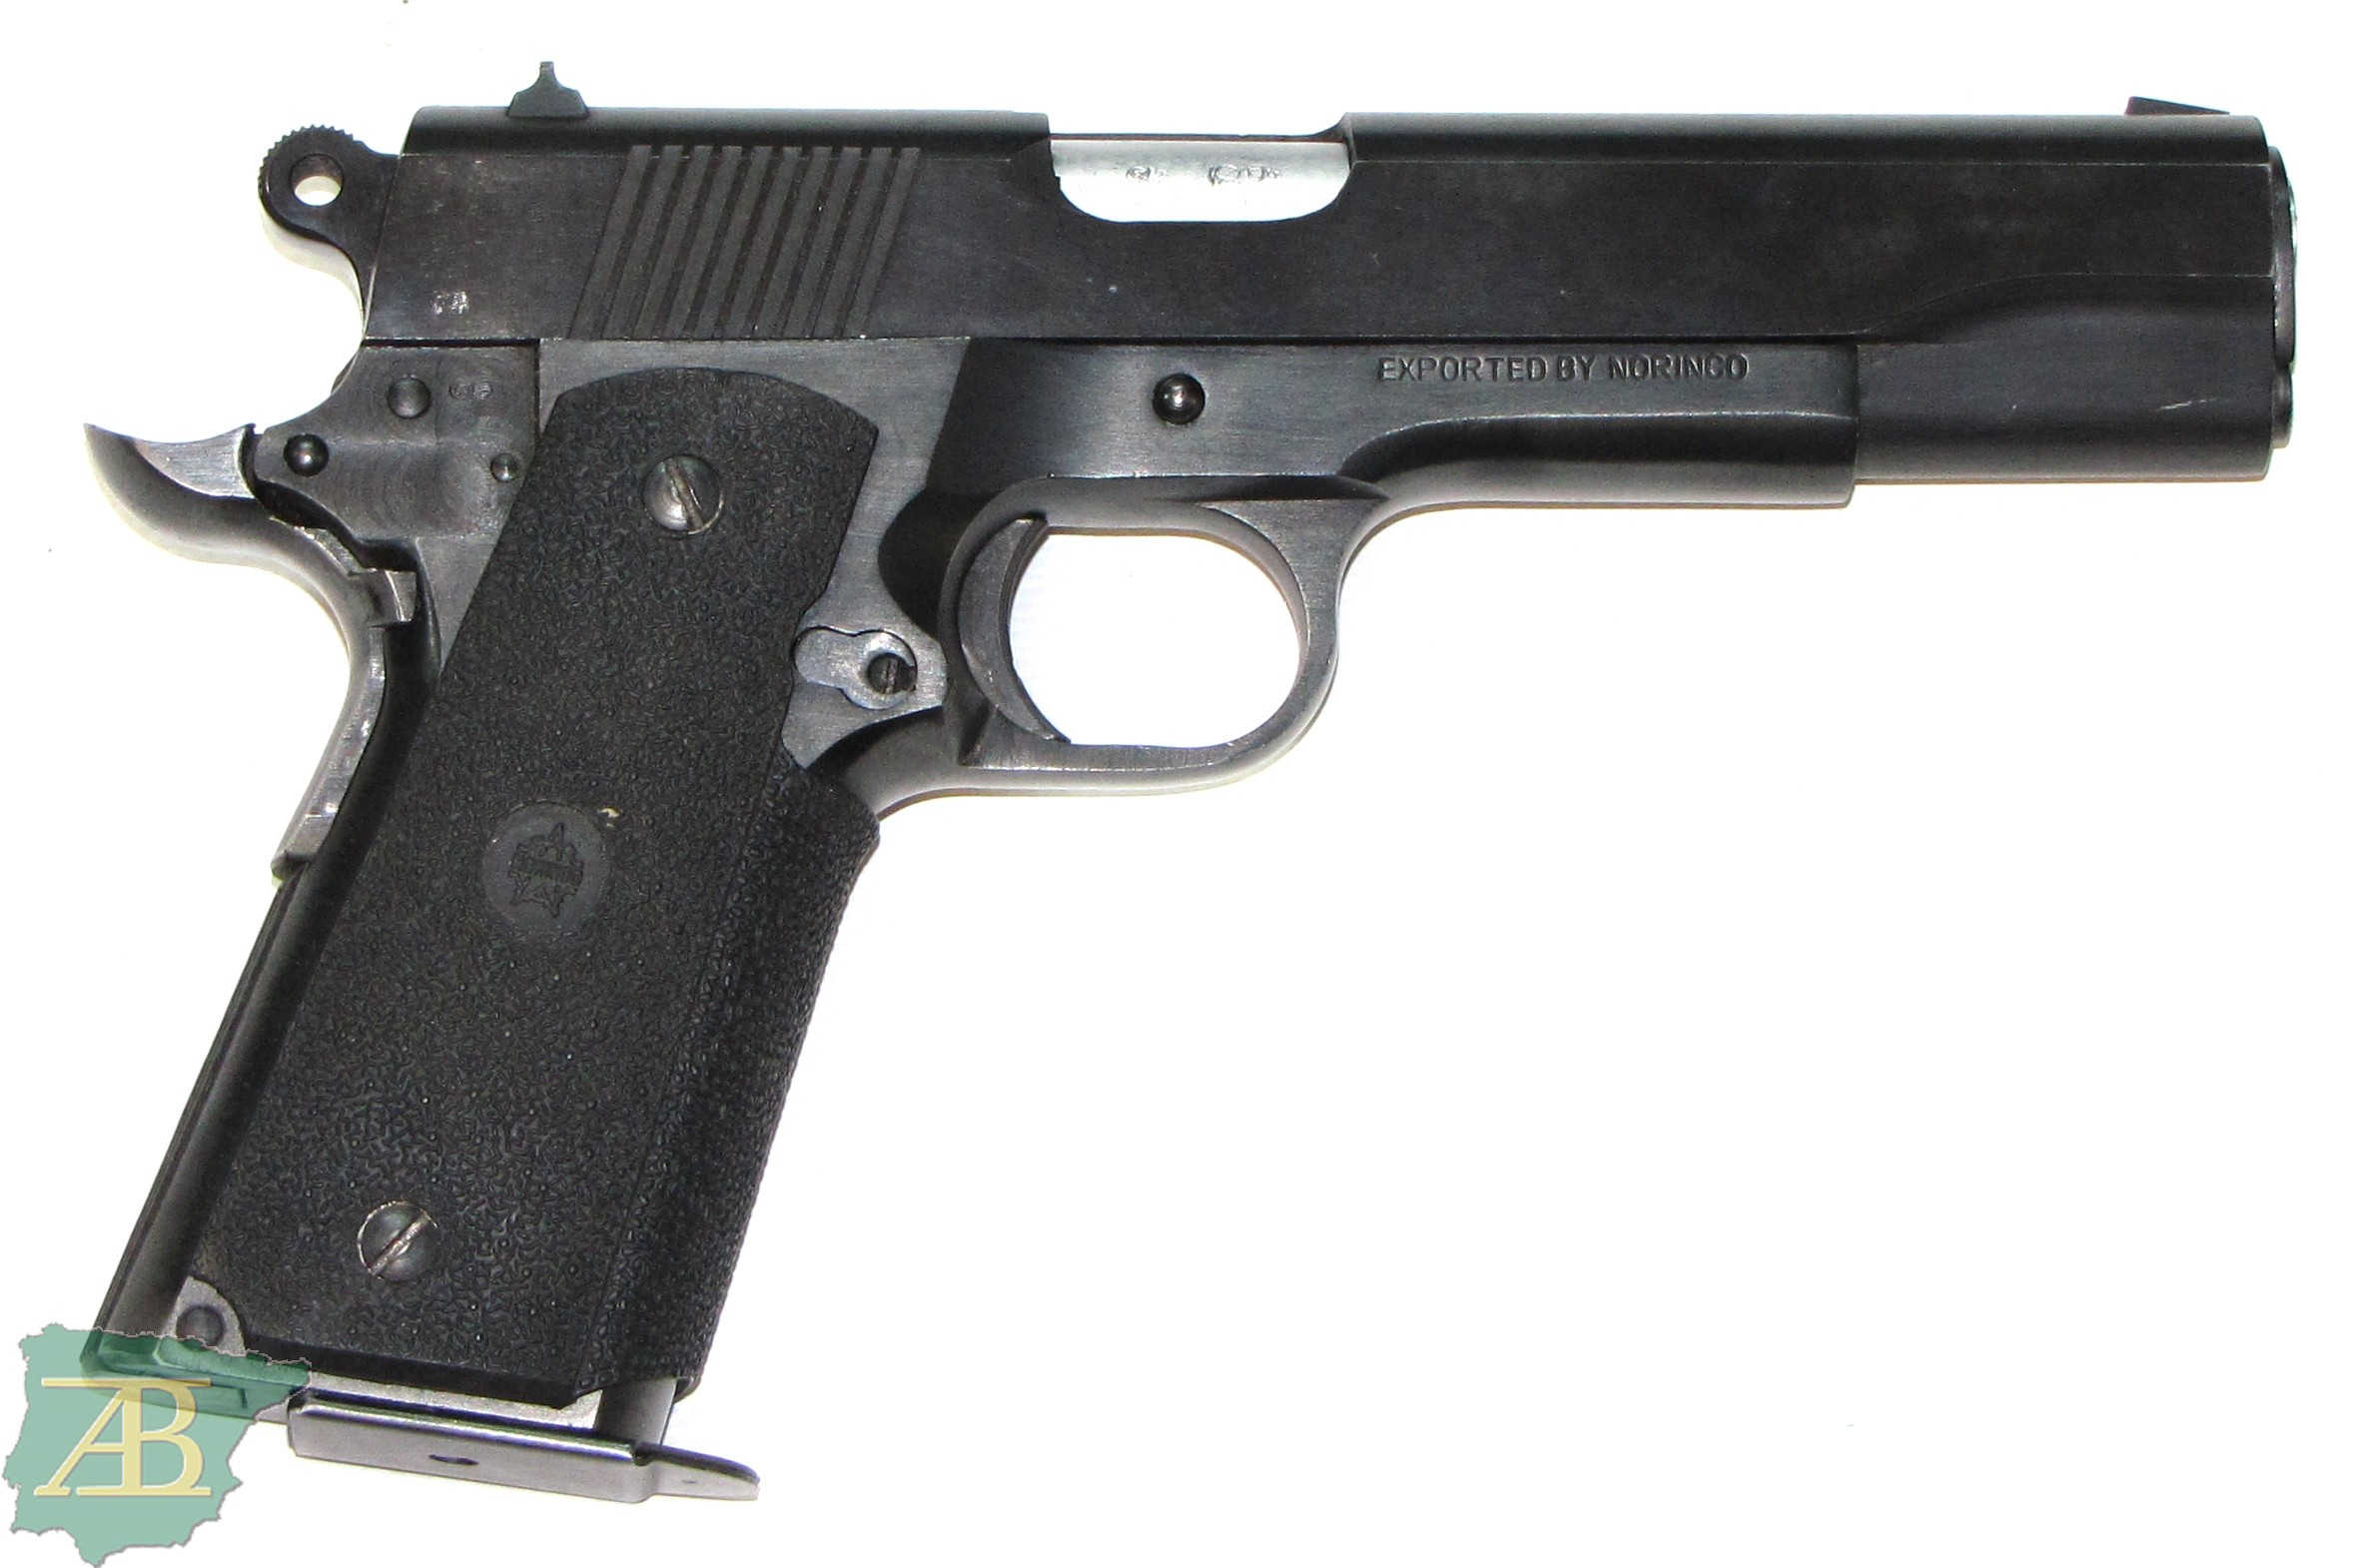 PISTOLA NORINCO 9 MM PB Ref. 5583